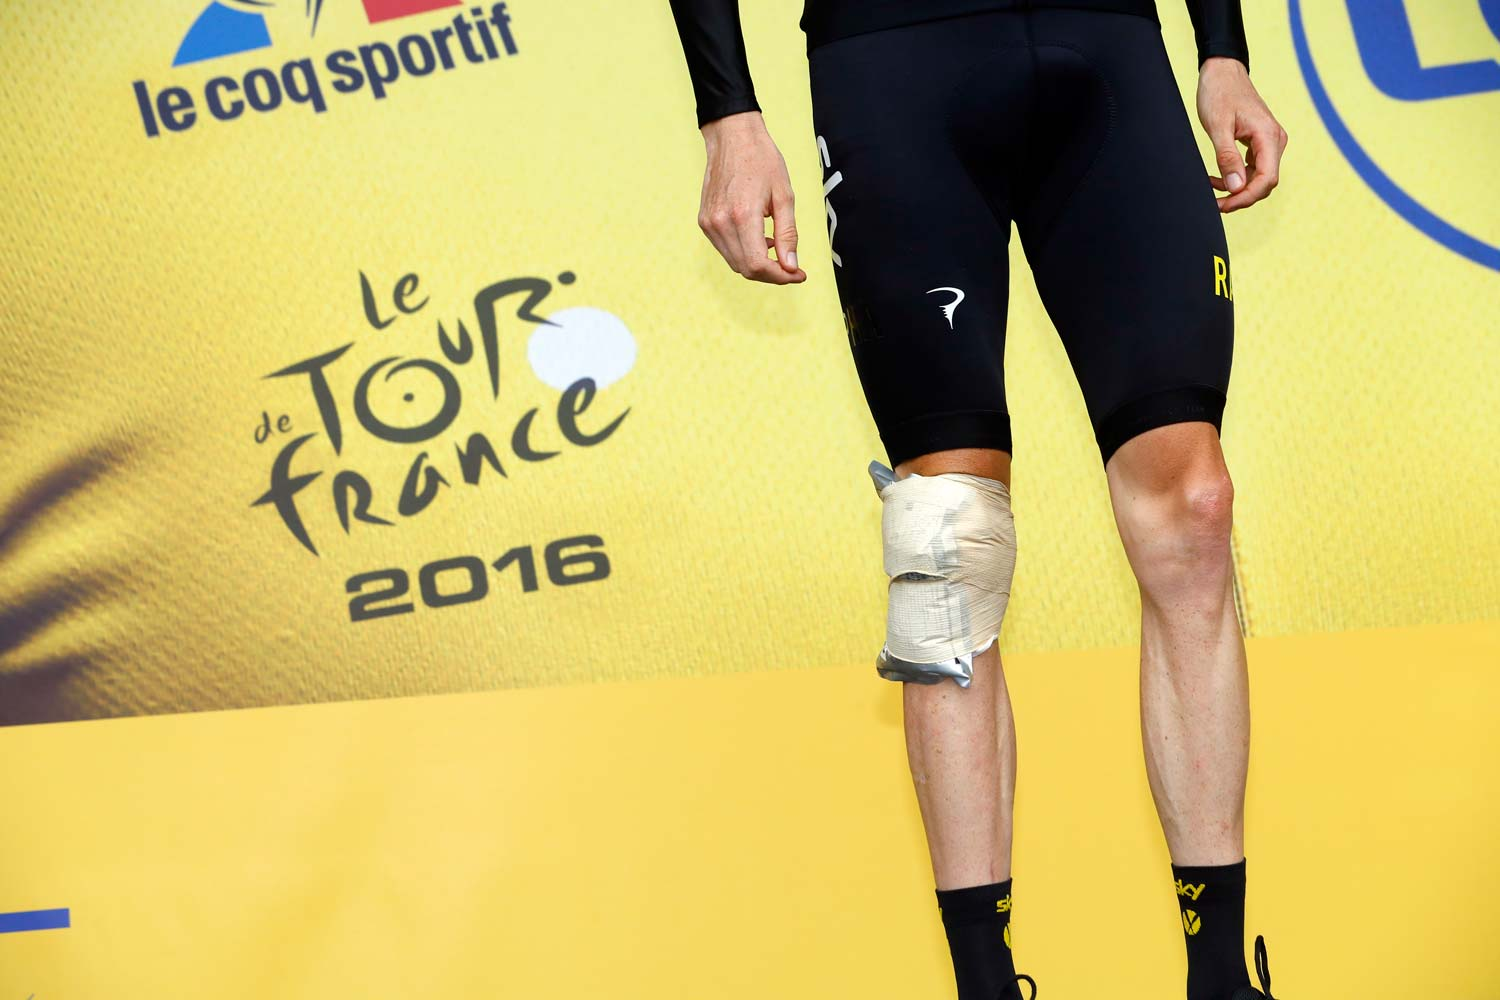 Wounded but walking... Chris Froome had a scare with a crash in stage 19 but he retains a solid lead on GC. Photo: Graham Watson